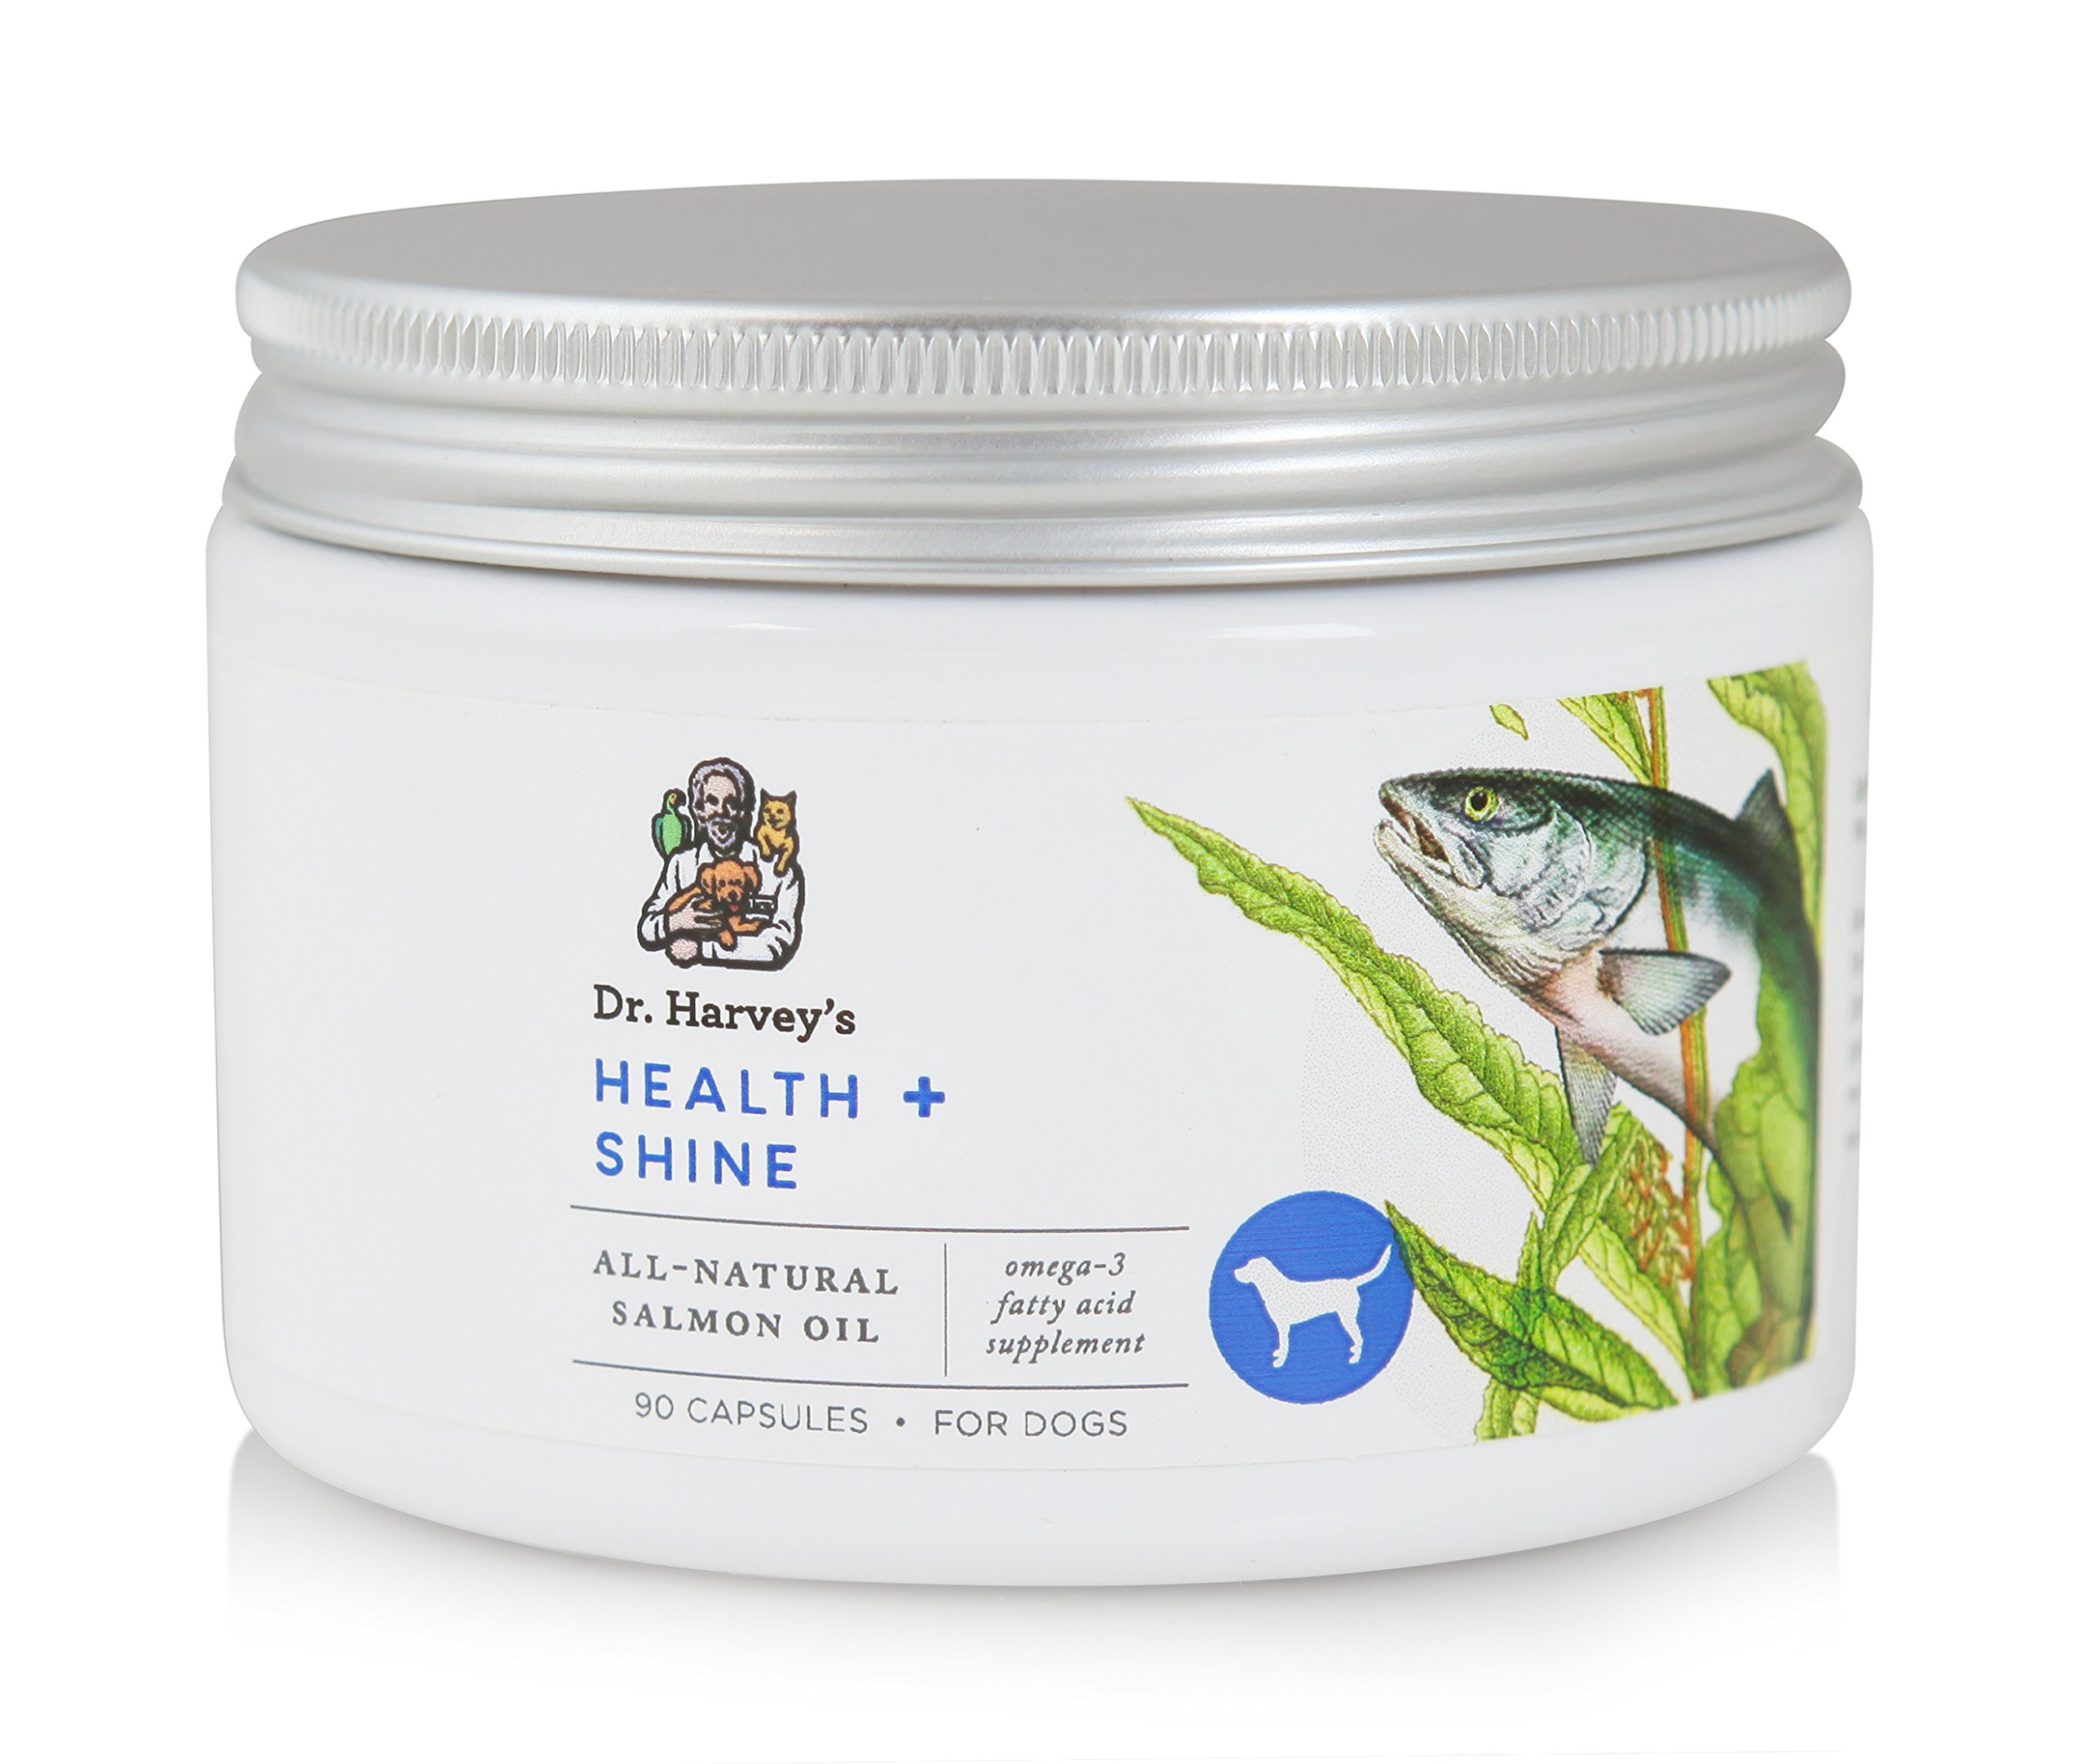 Dr. Harvey's 90 Count Health and Shine Oil Capsules for Dogs